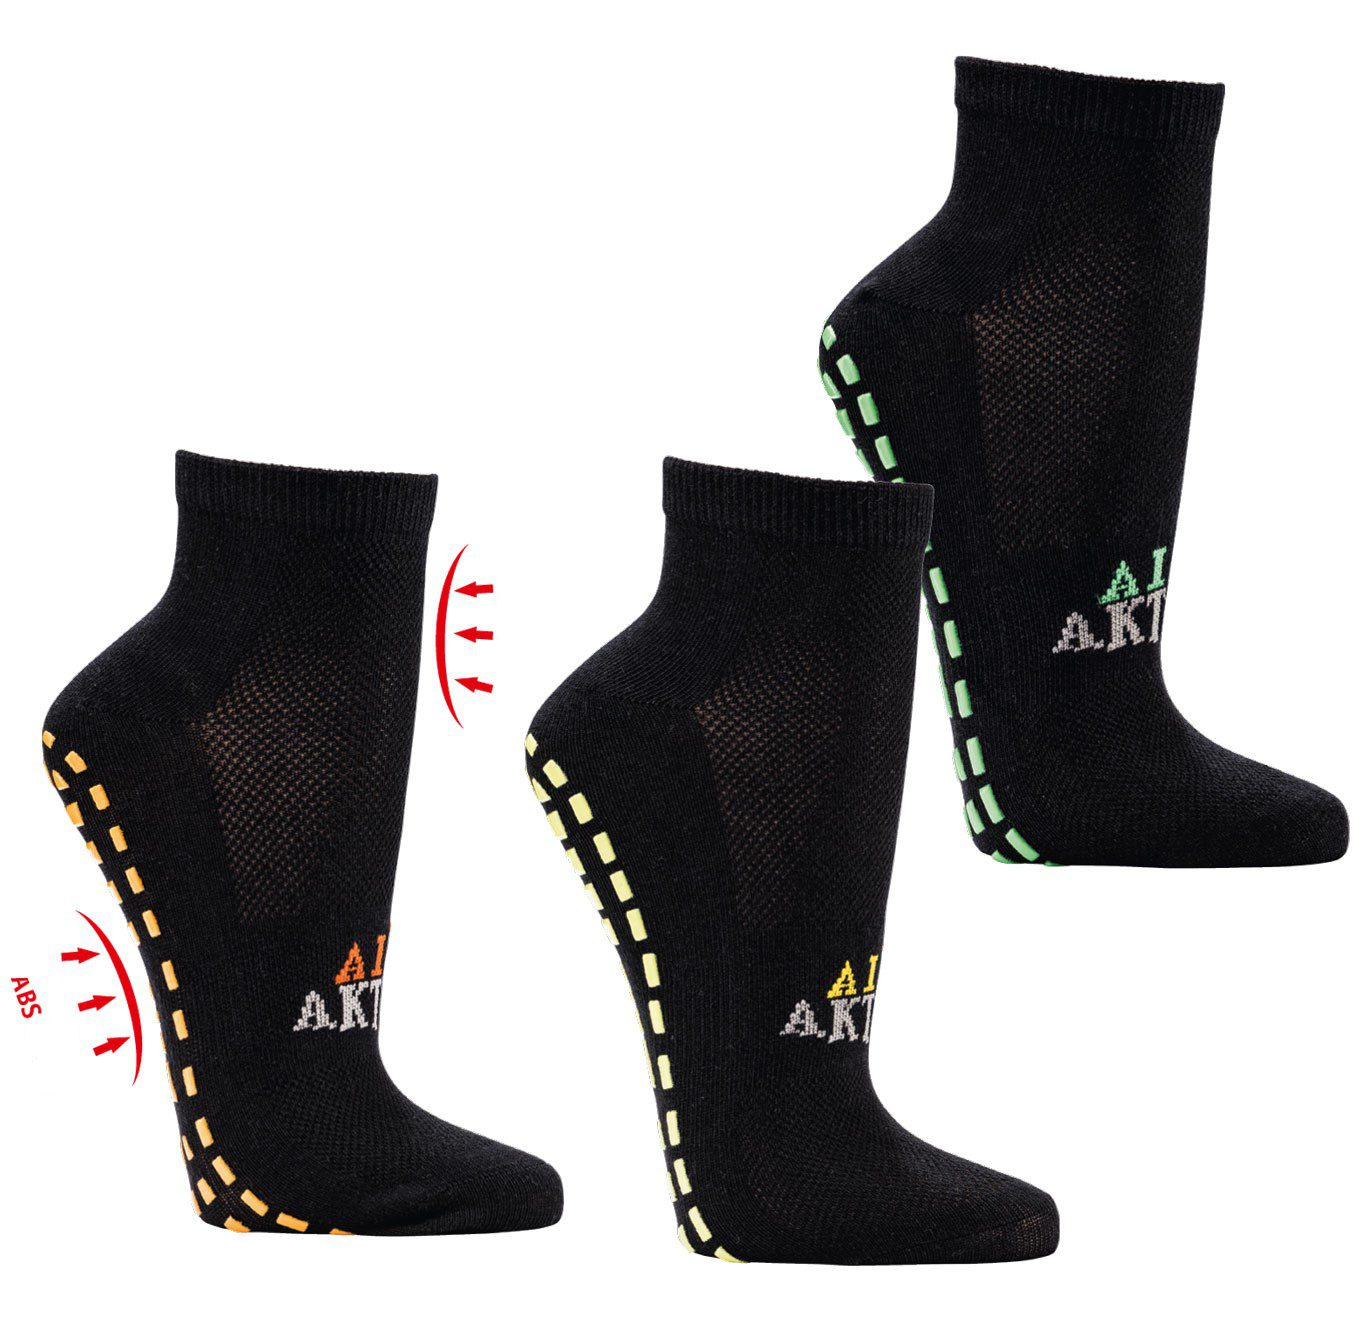 ABS nogavice FIT - JUMP SOCKS 2